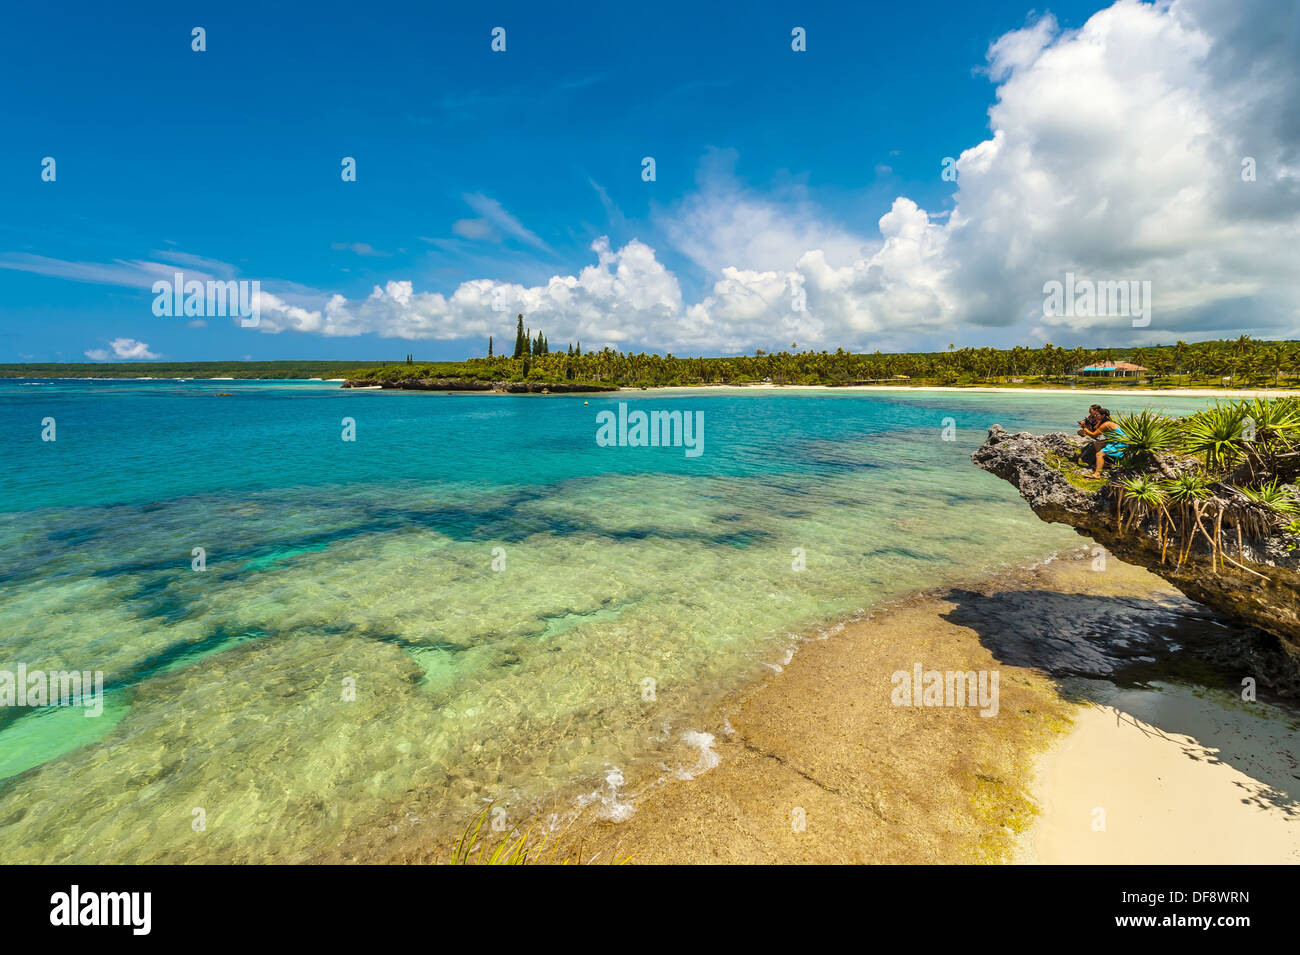 Mou Beach, Lifou island, Loyalty Islands, New Caledonia - Stock Image